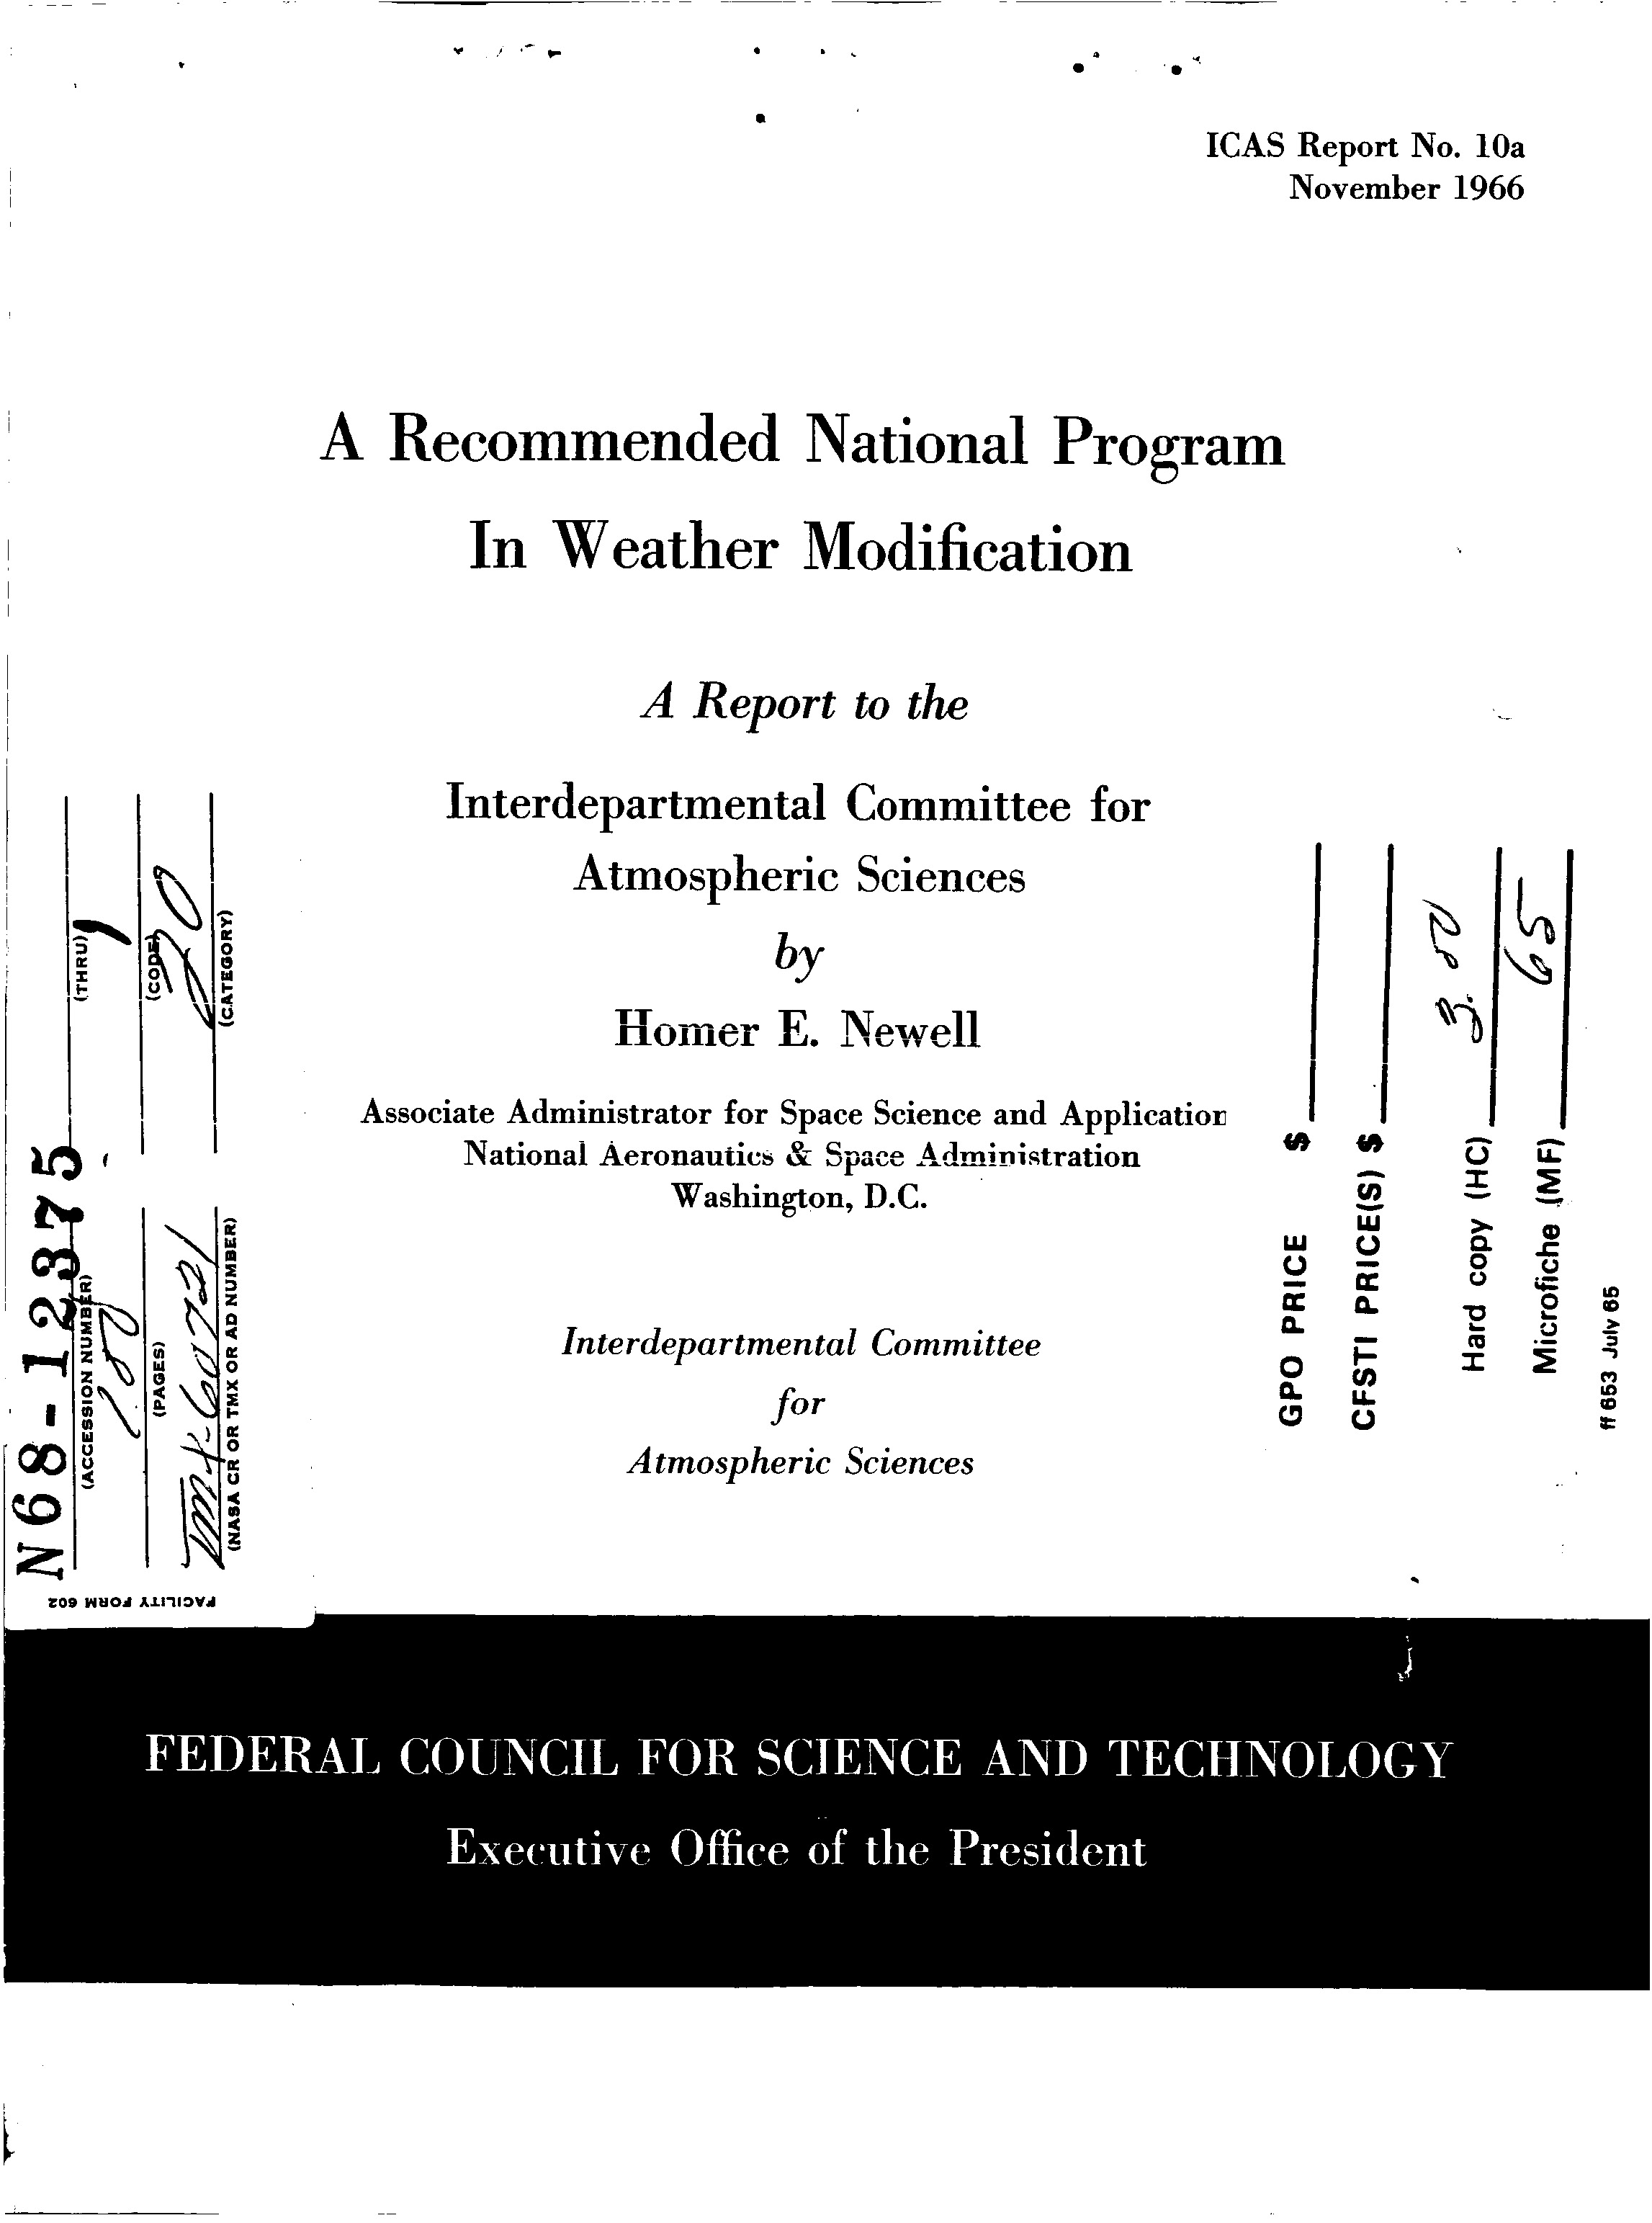 Us Government Document Outlines National Weather